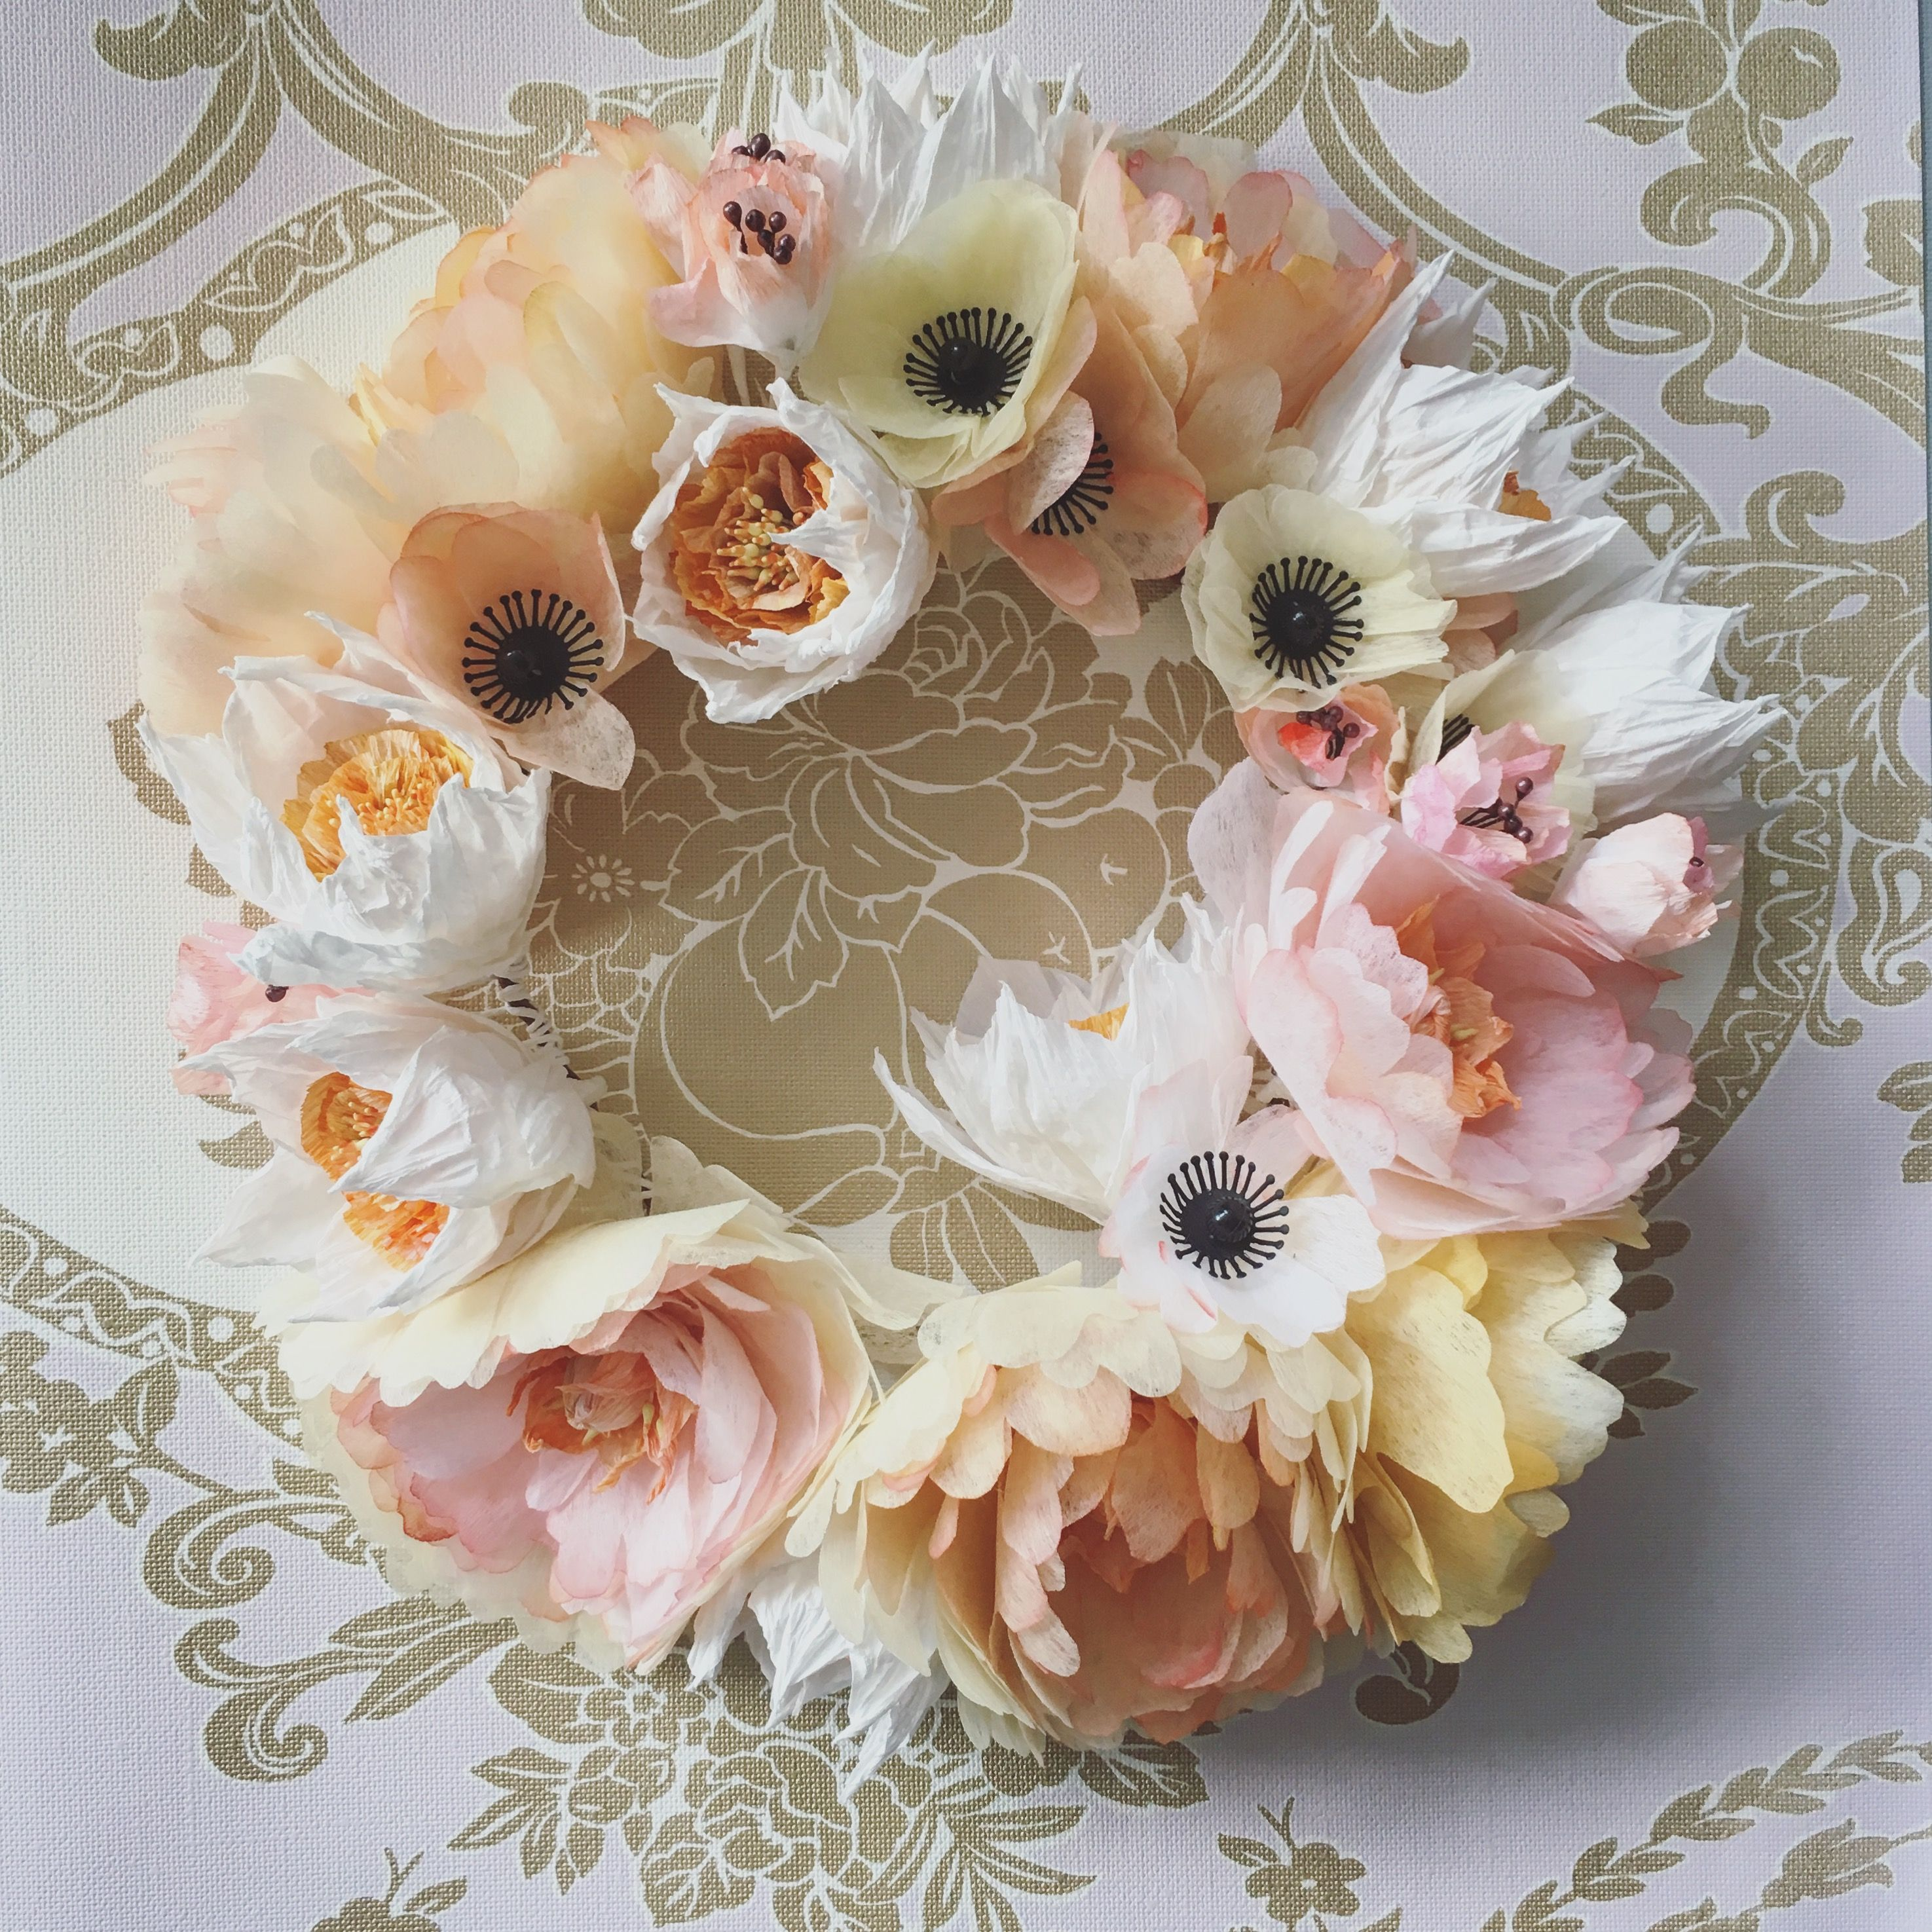 Paper Flower Wreath Easter Wall Decoration More Httpswww